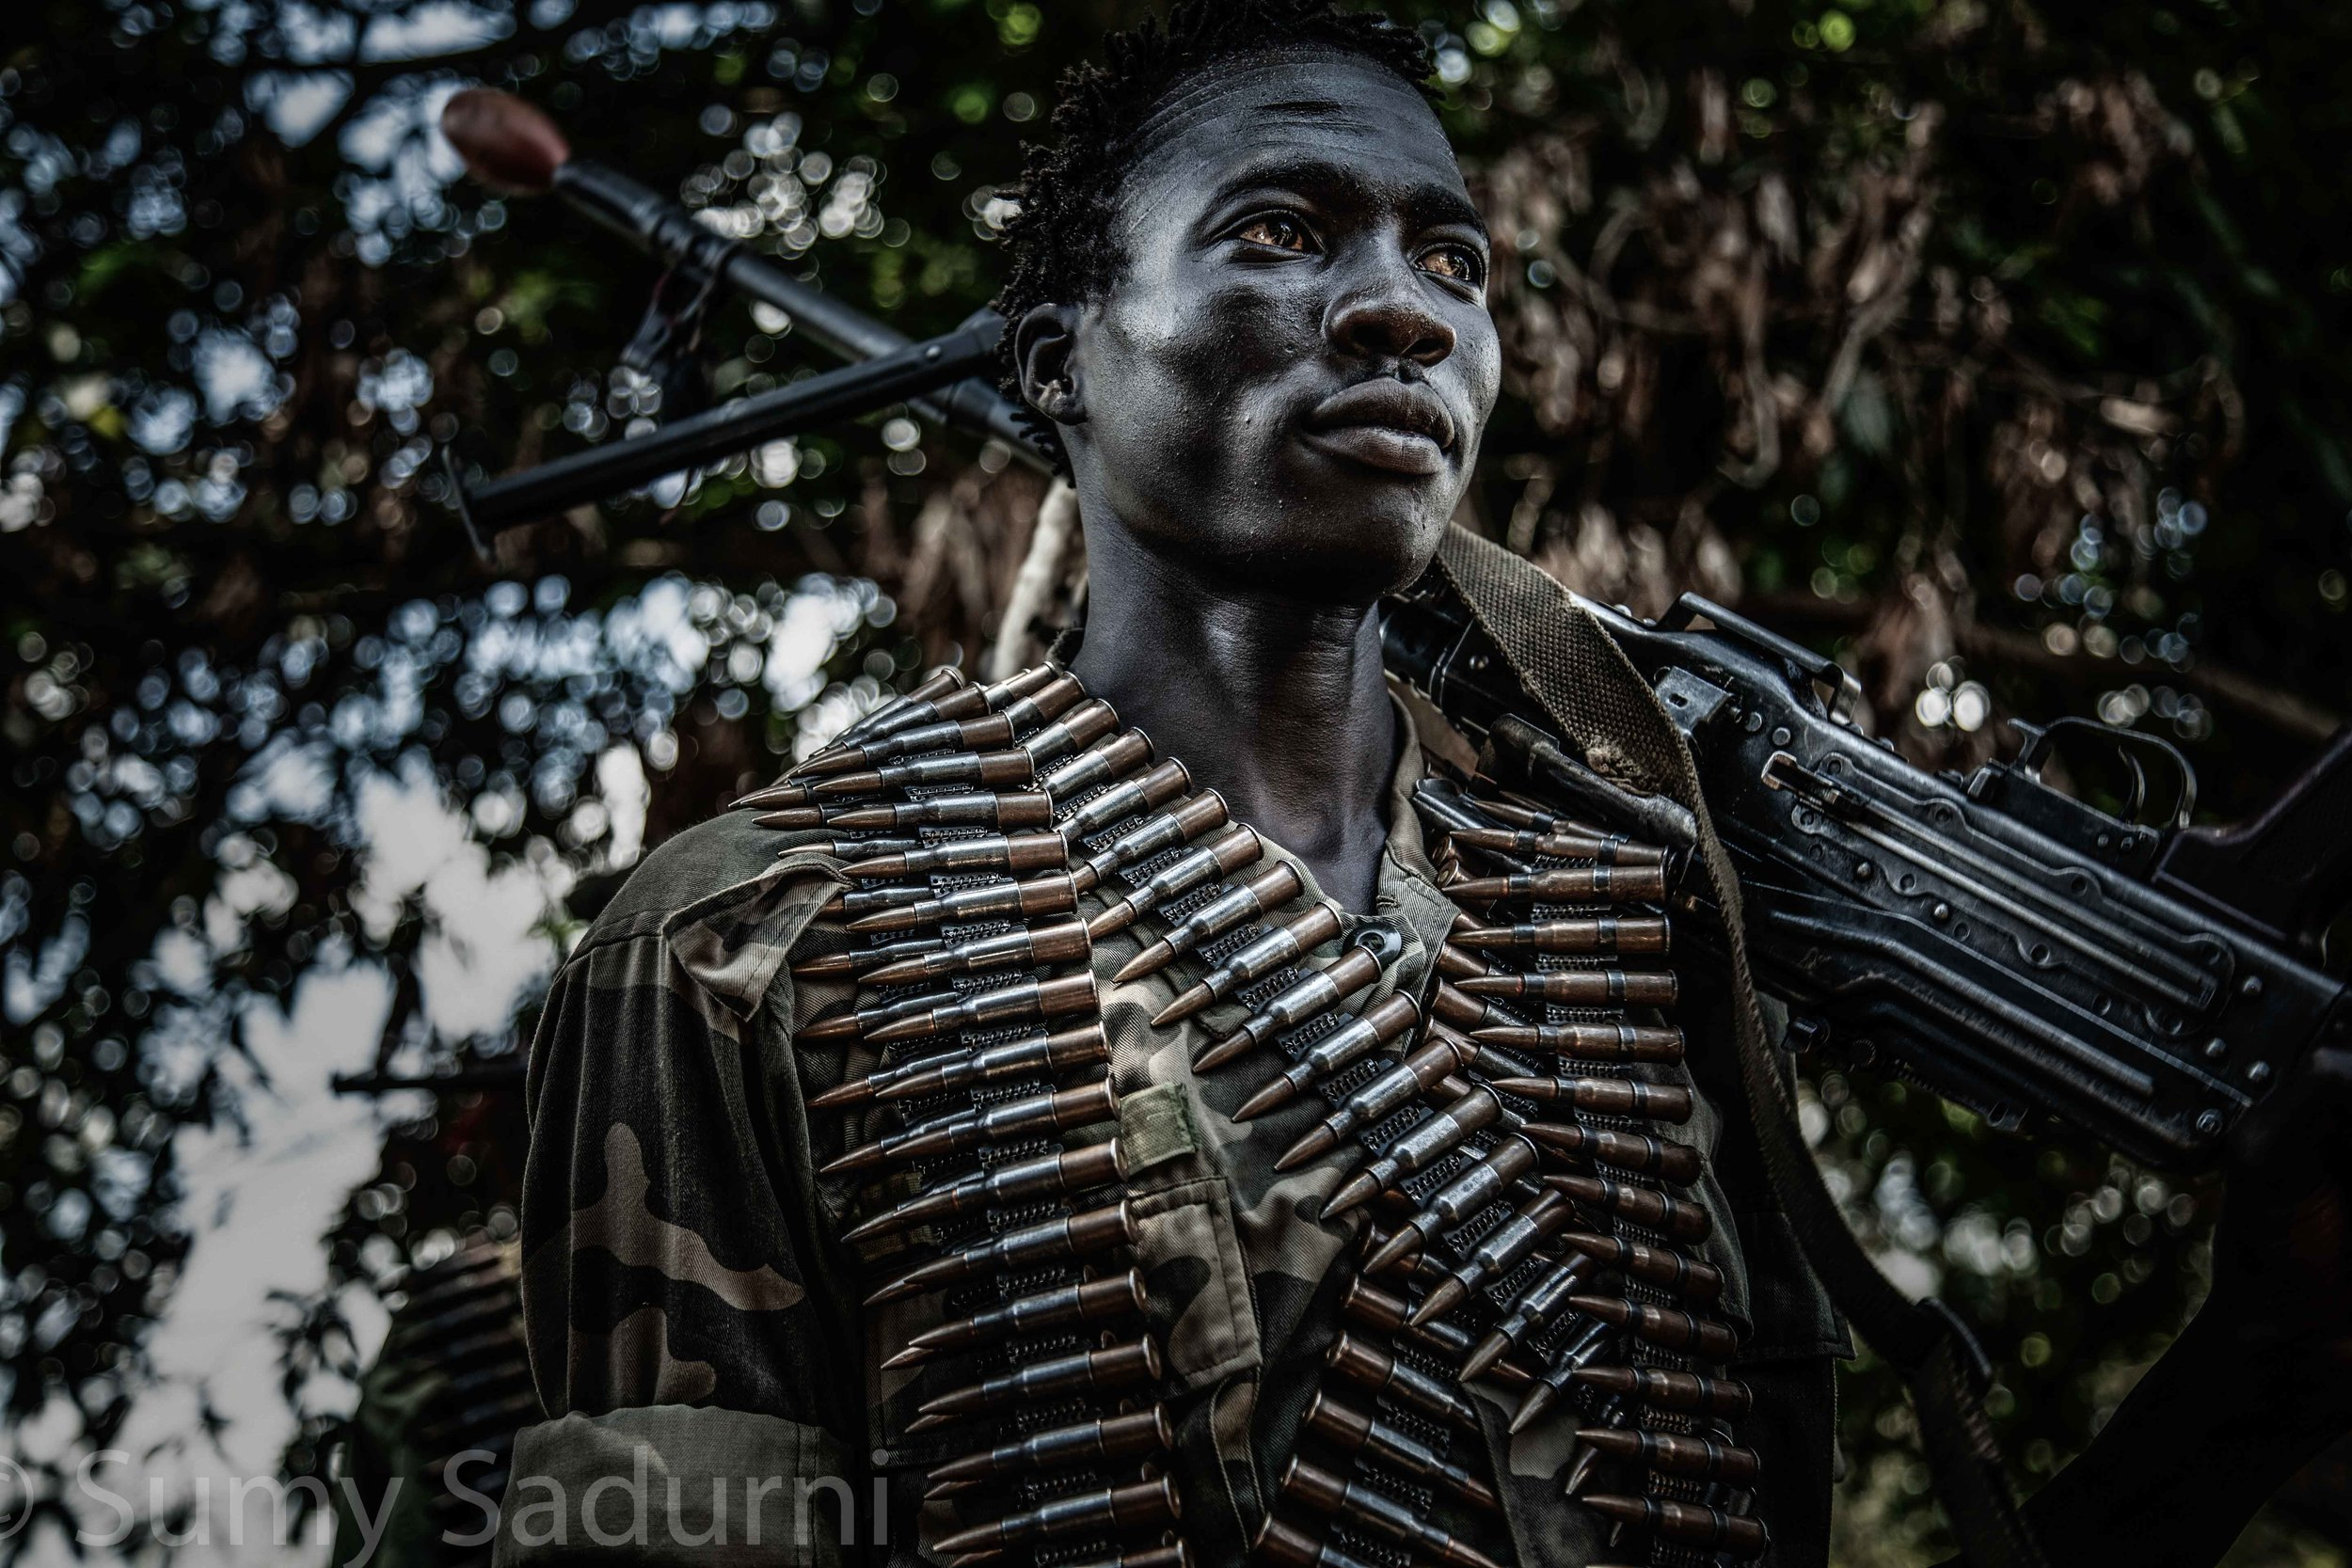 Print 4: A rebel fighter from the Sudan People's Liberation Army - In Opposition (SPLA-IO) prepares to be deployed to the frontline in Panyume, South Sudan.